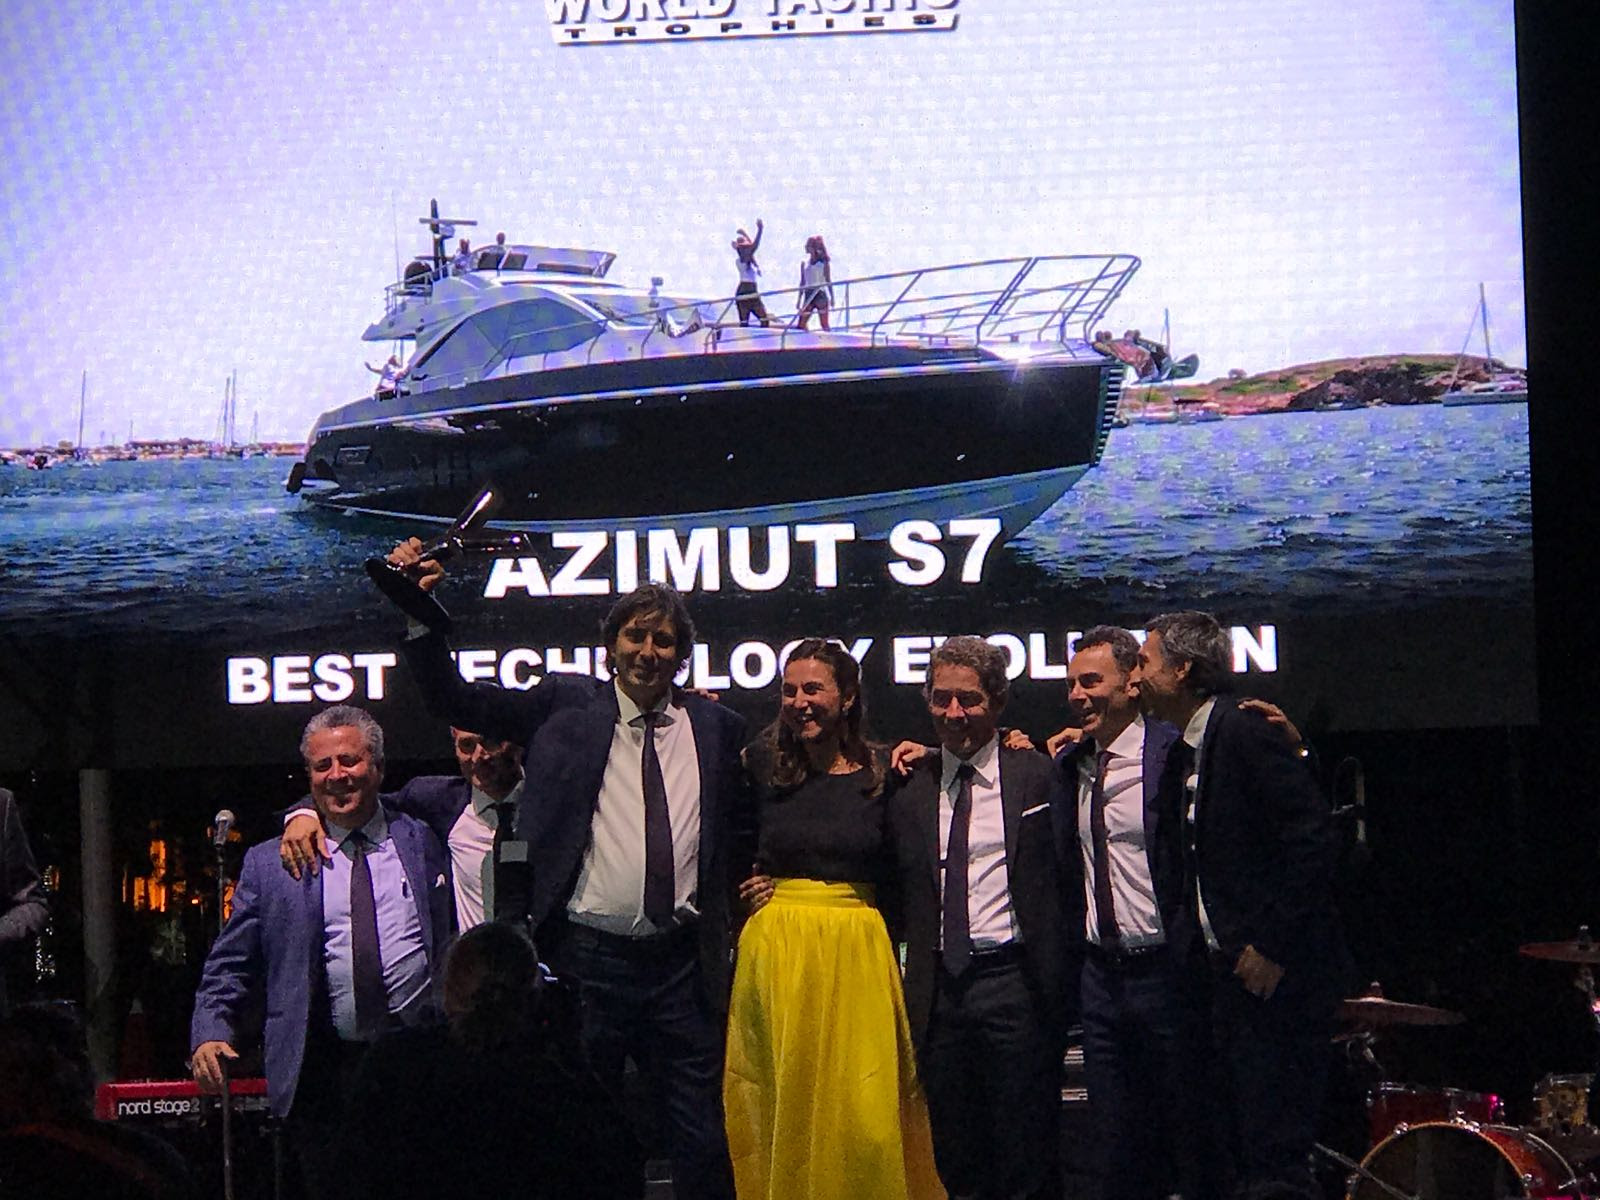 The Azimut S7 won Best Yacht Evolution at the World Yachts Trophies 2017